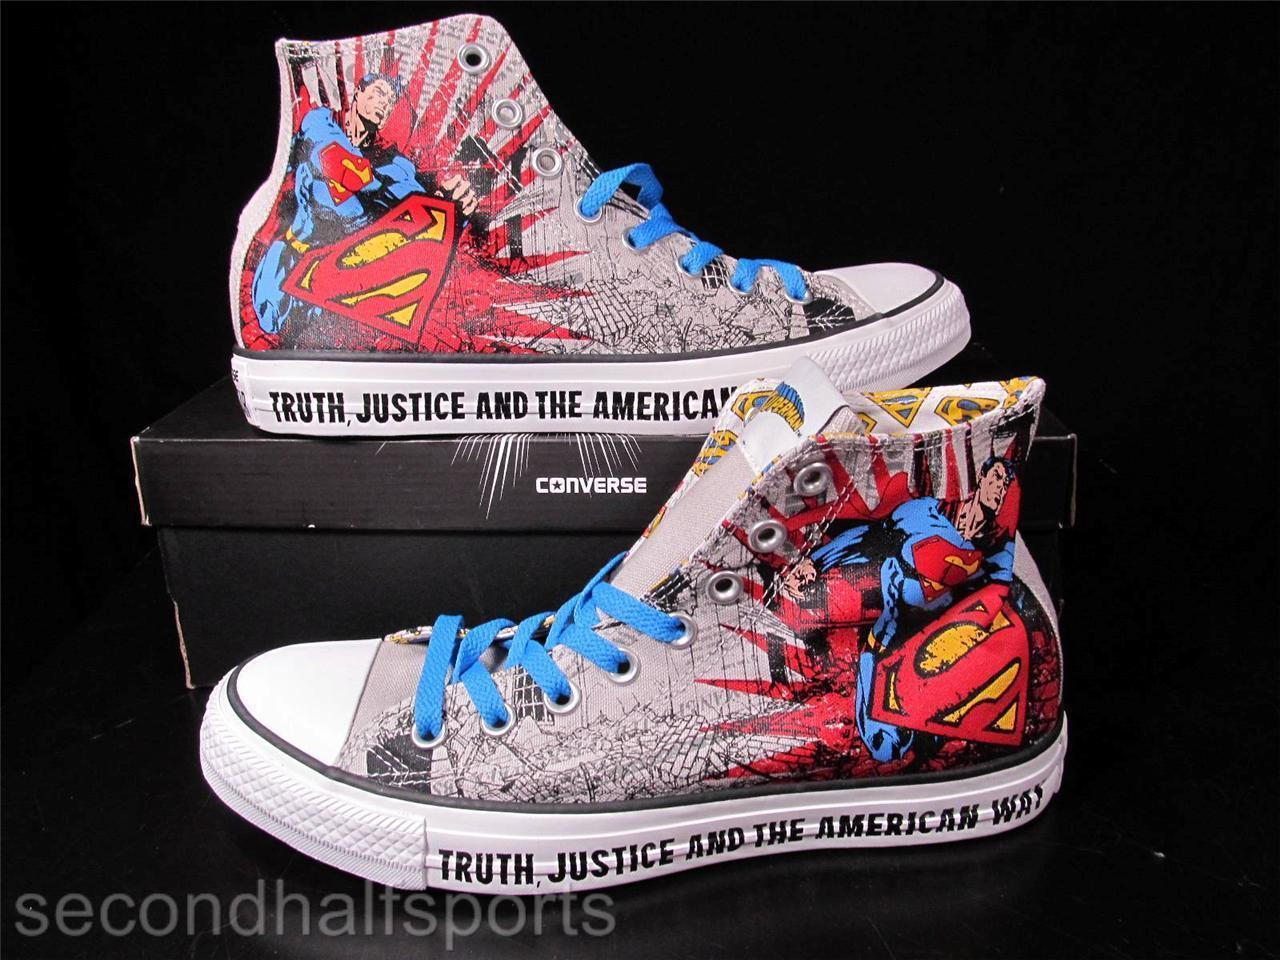 470d4a388394 S l1600. S l1600. Previous. Converse SUPERMAN DC COMICS Chuck Taylor All  Star Sneaker 141260C NWOB